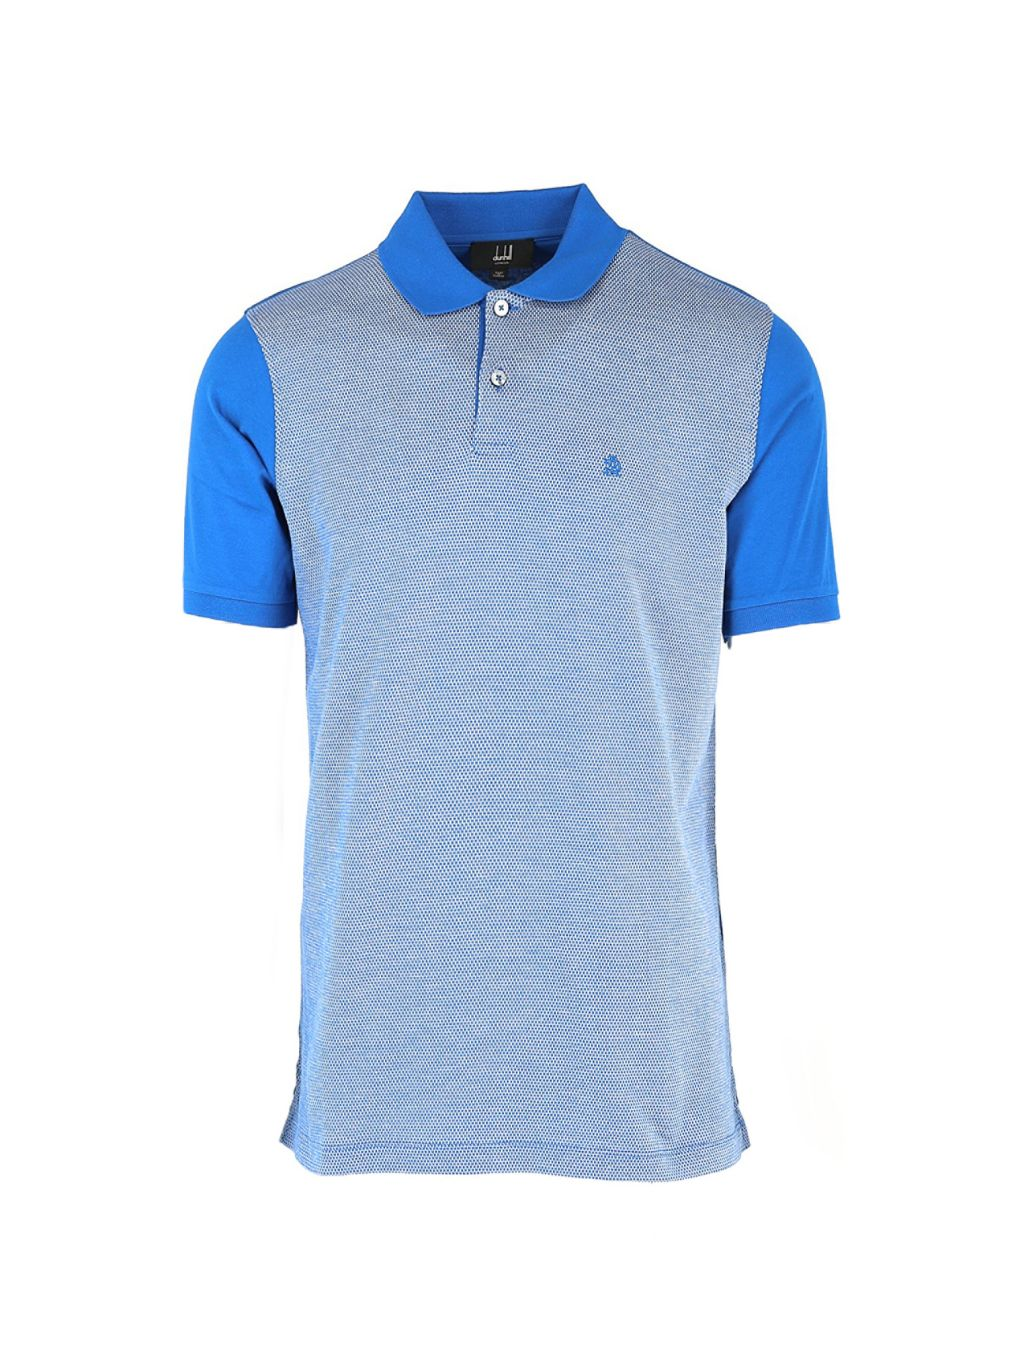 Dunhill Regular-Fit Colorblock Cotton Polo